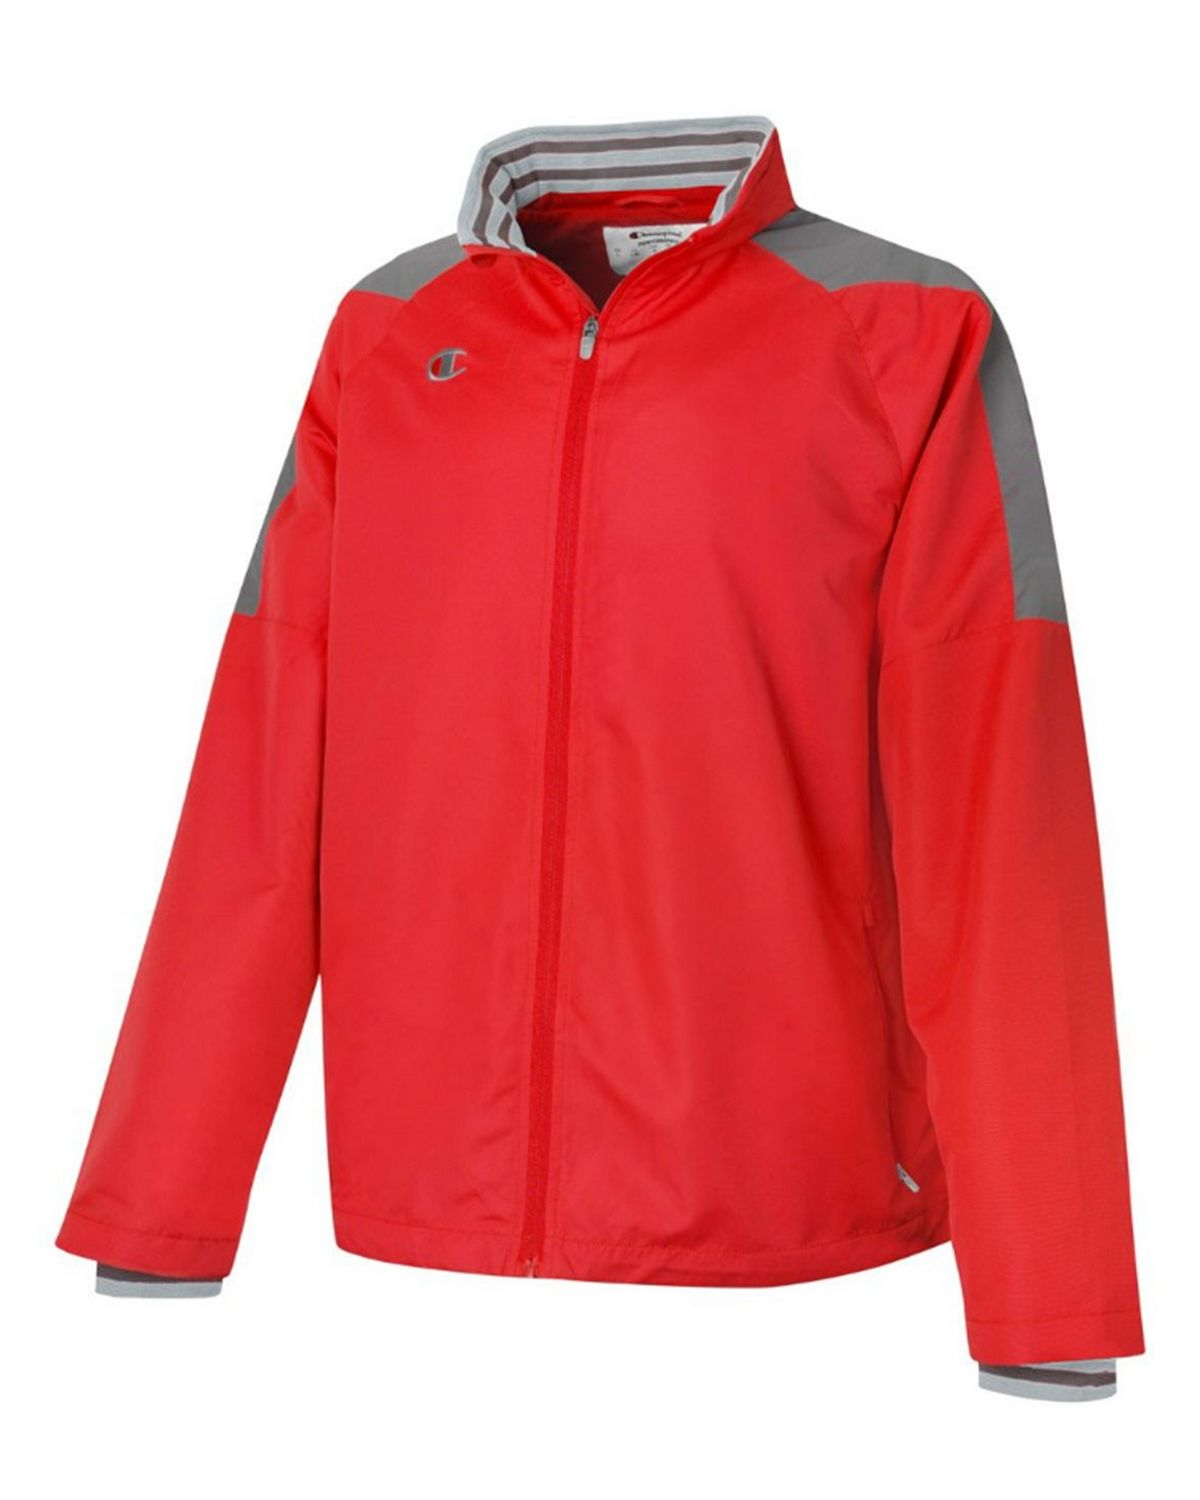 Champion V070 Mens Full Zip Jacket - Scarlet/Dark Platinum Gray - XL V070